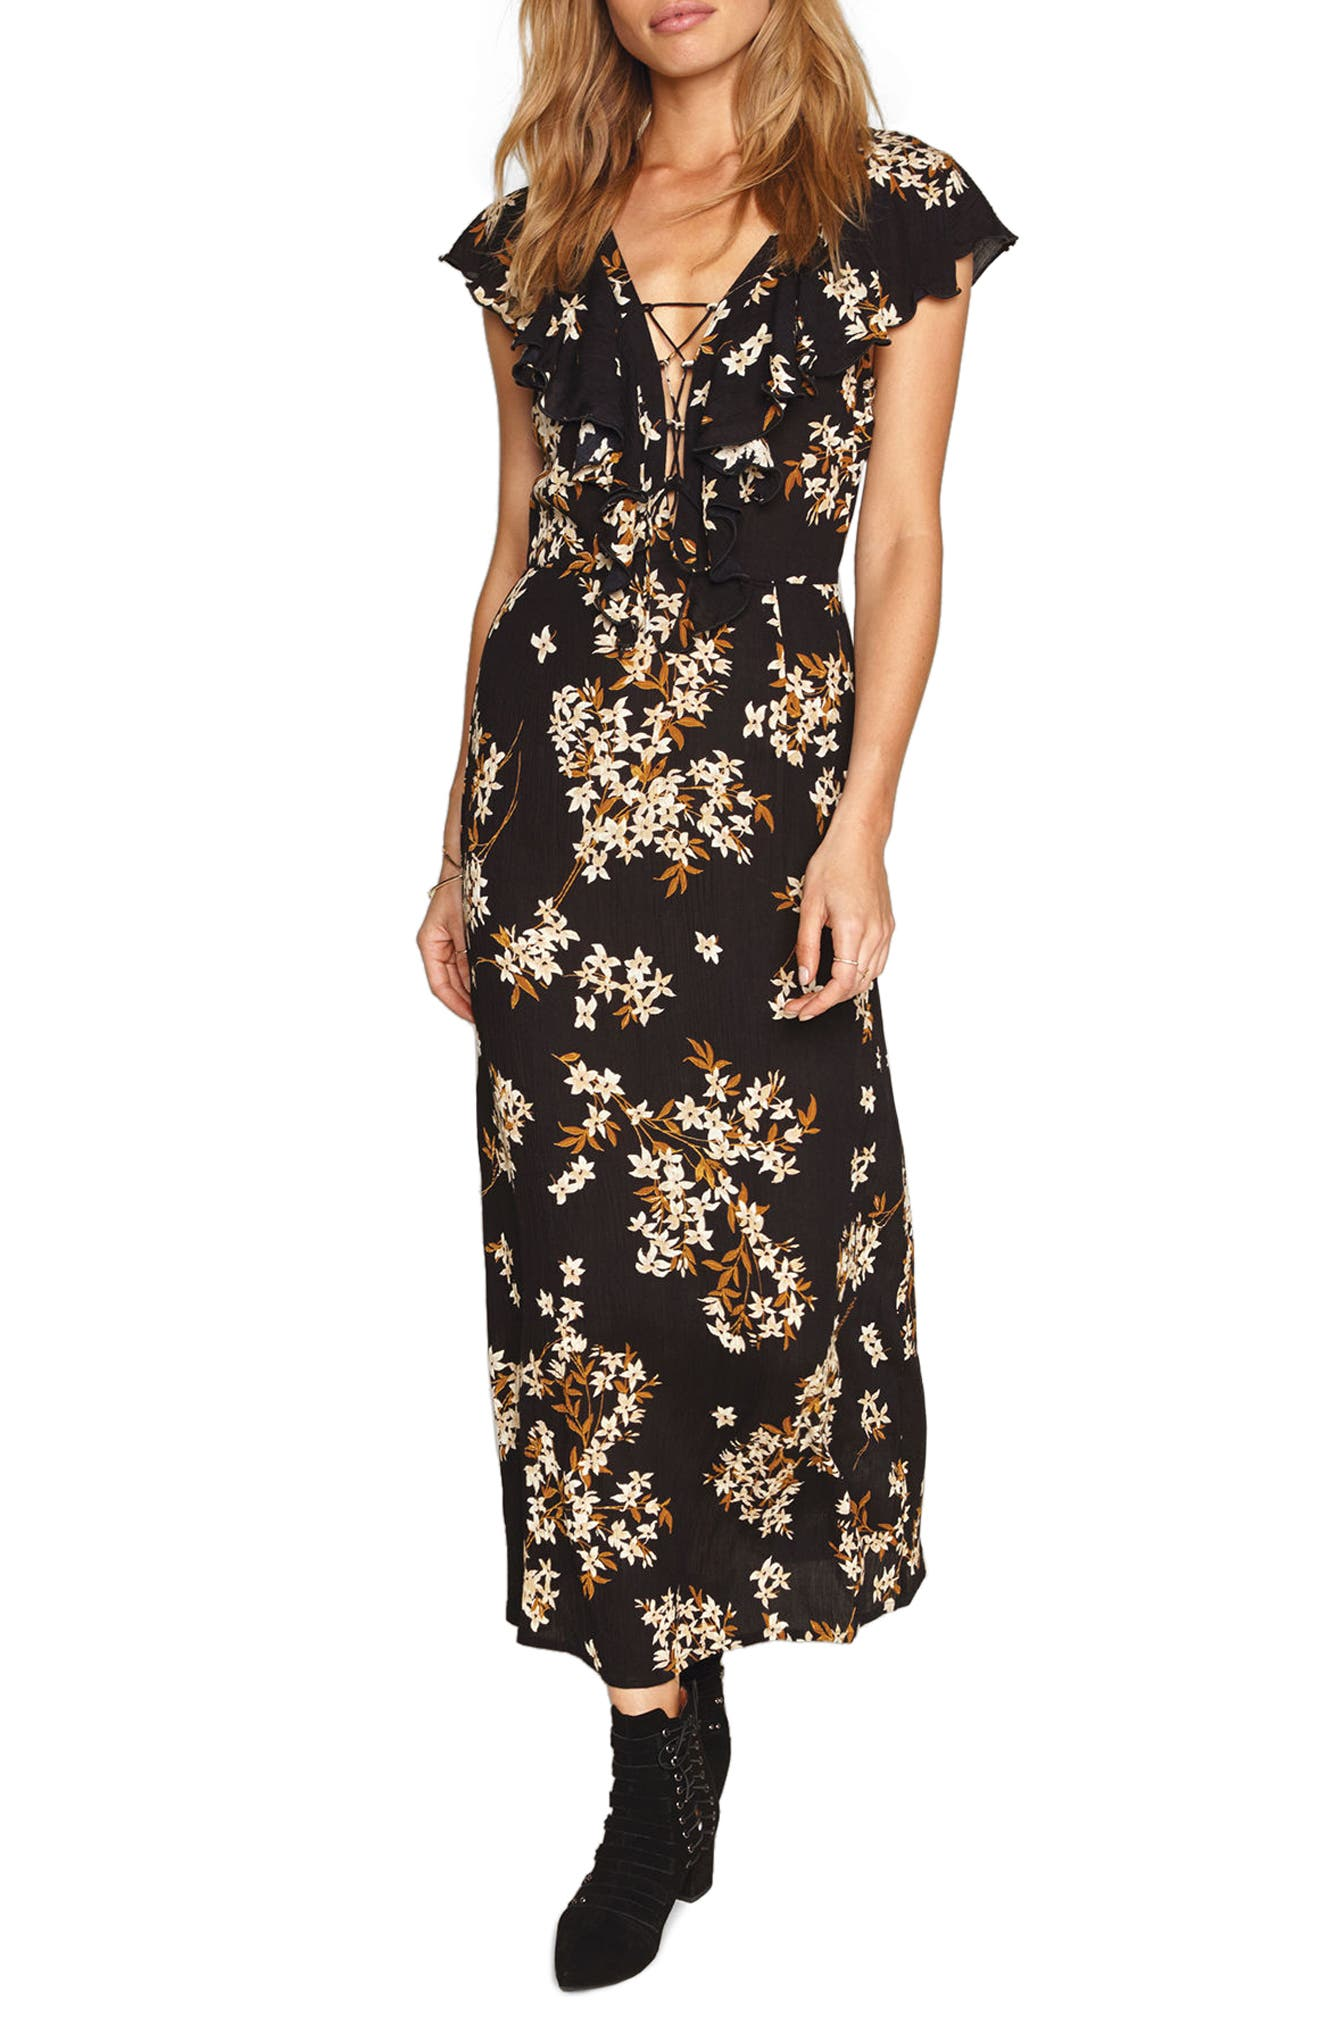 Amuse Society Alana Floral Lace-Up Dress